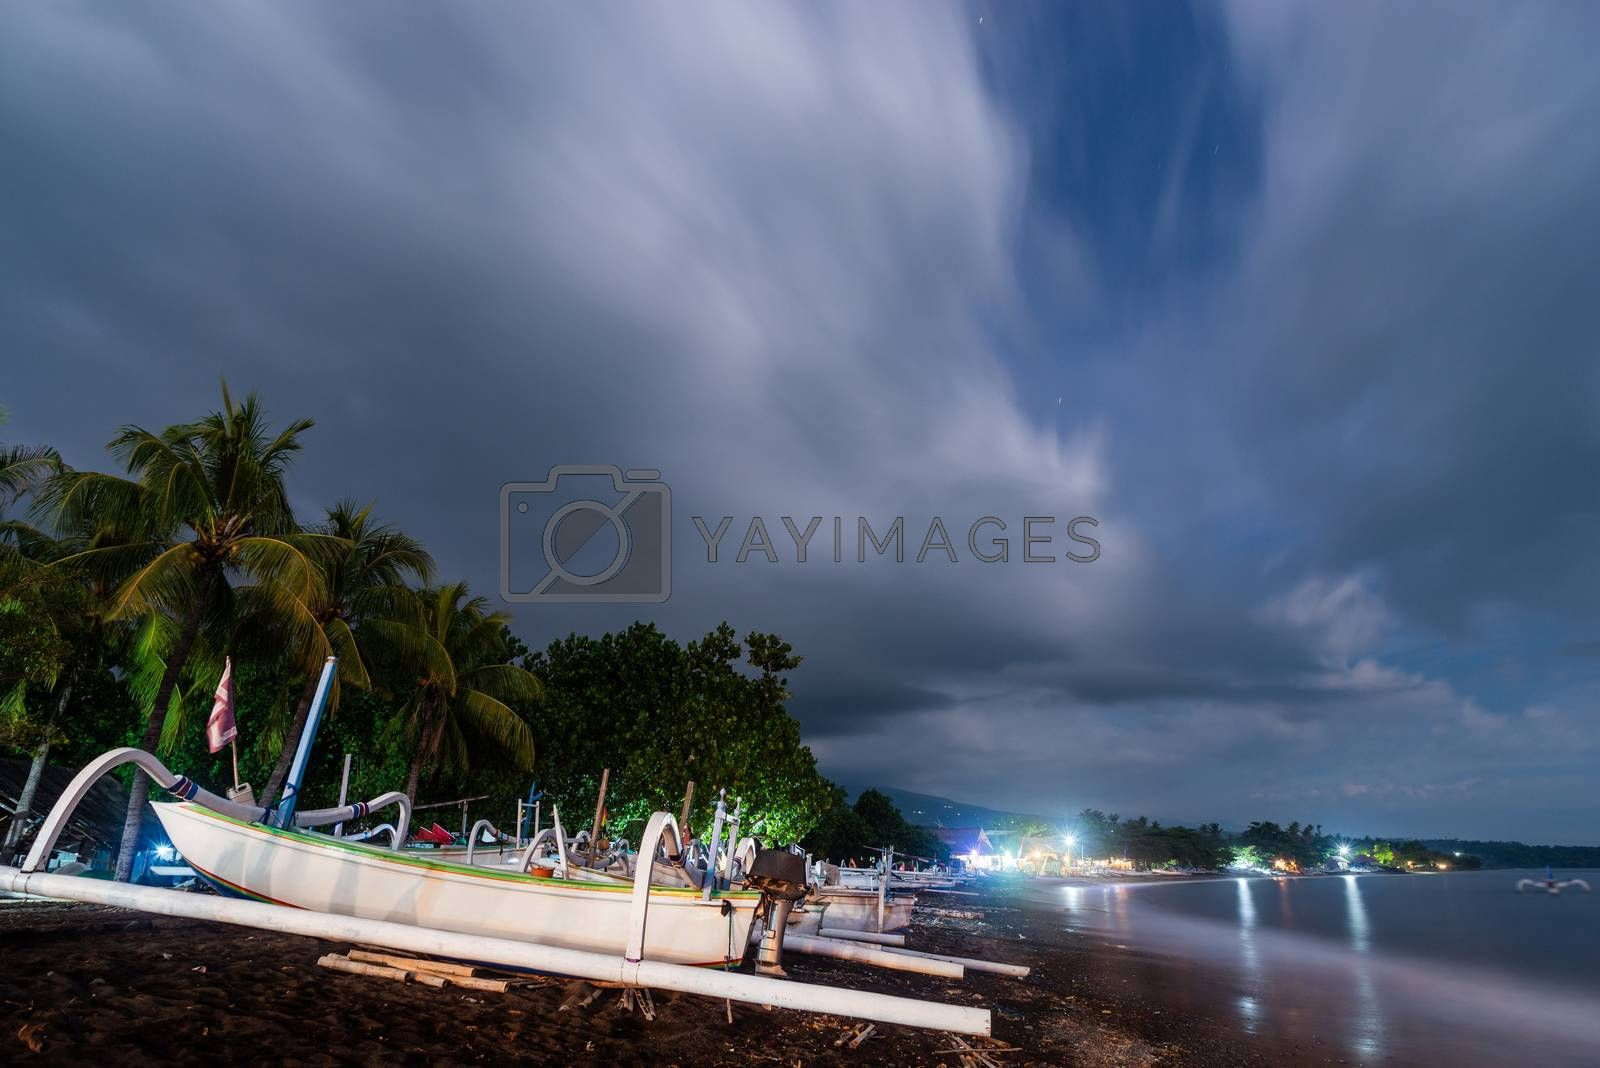 Traditional fishing boats on Amed beach at night in Bali, Indonesia. Long exposure photography resulting in motion blur in the clouds, the sea and the trees.